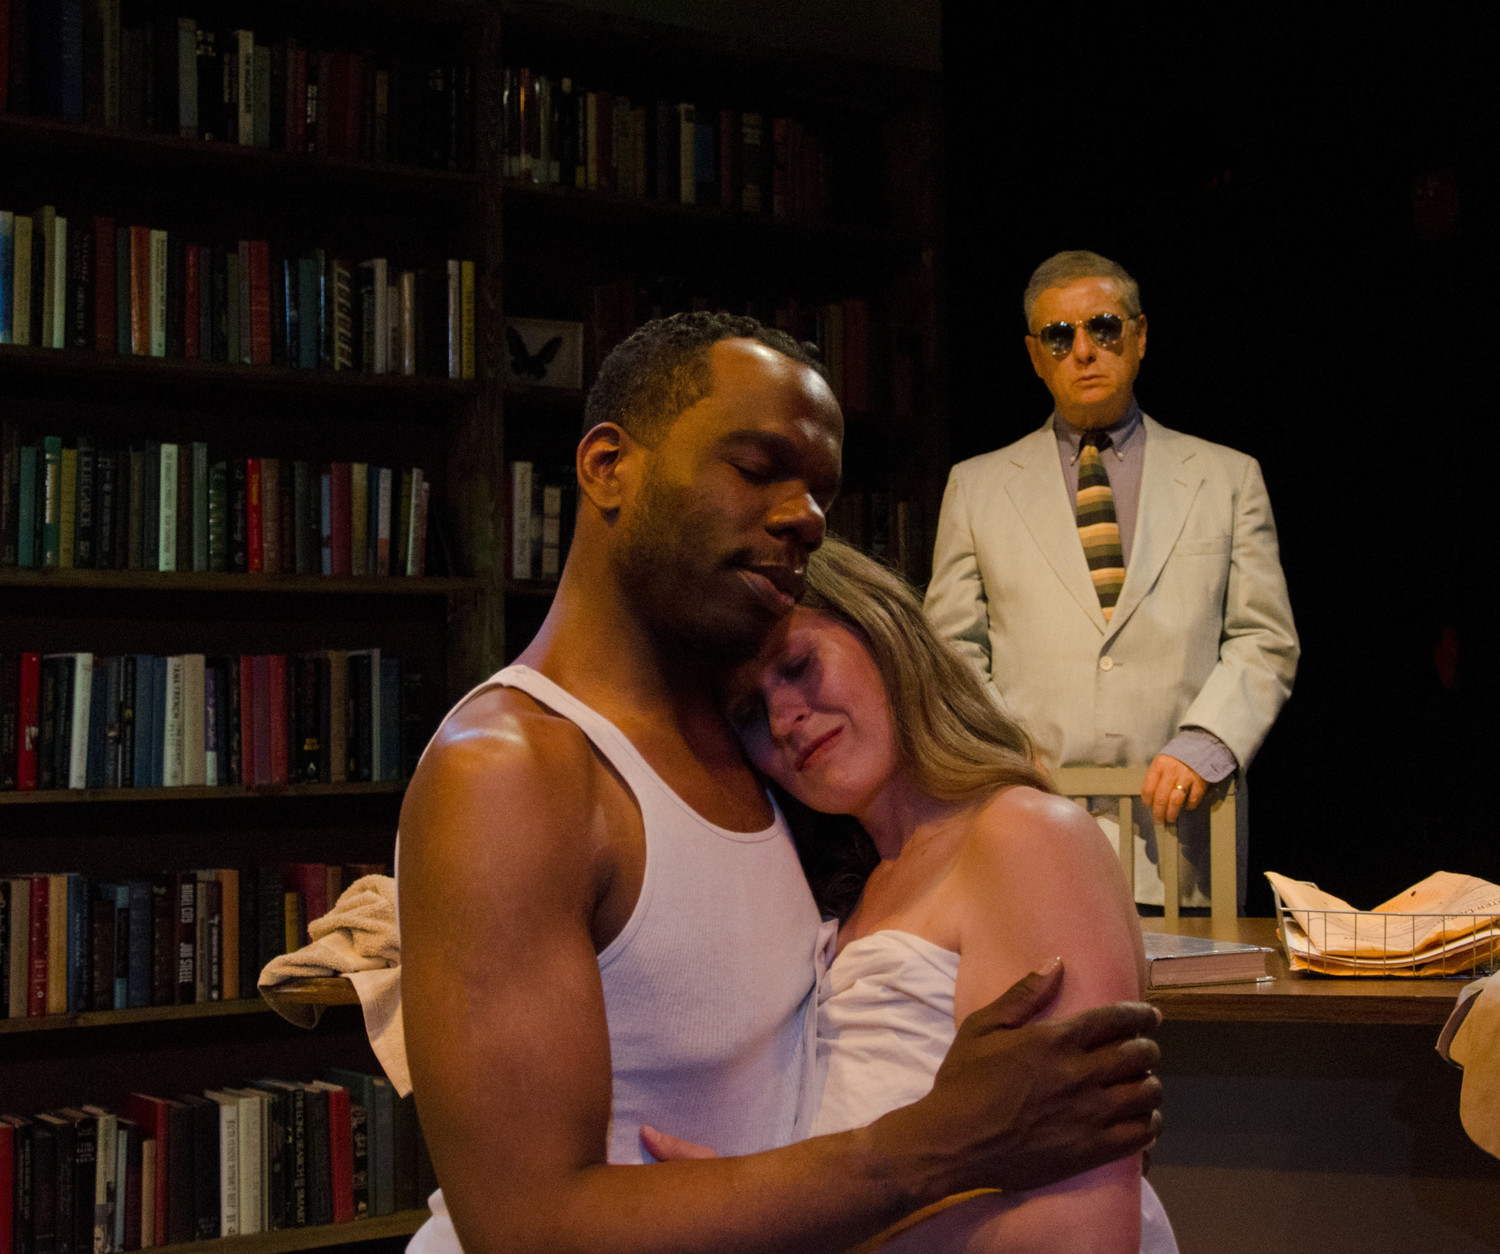 BWW Review: Relevant Topic Probed in STATEMENTS AFTER AN ARREST UNDER THE IMMORALITY ACT at Convergence Continuum